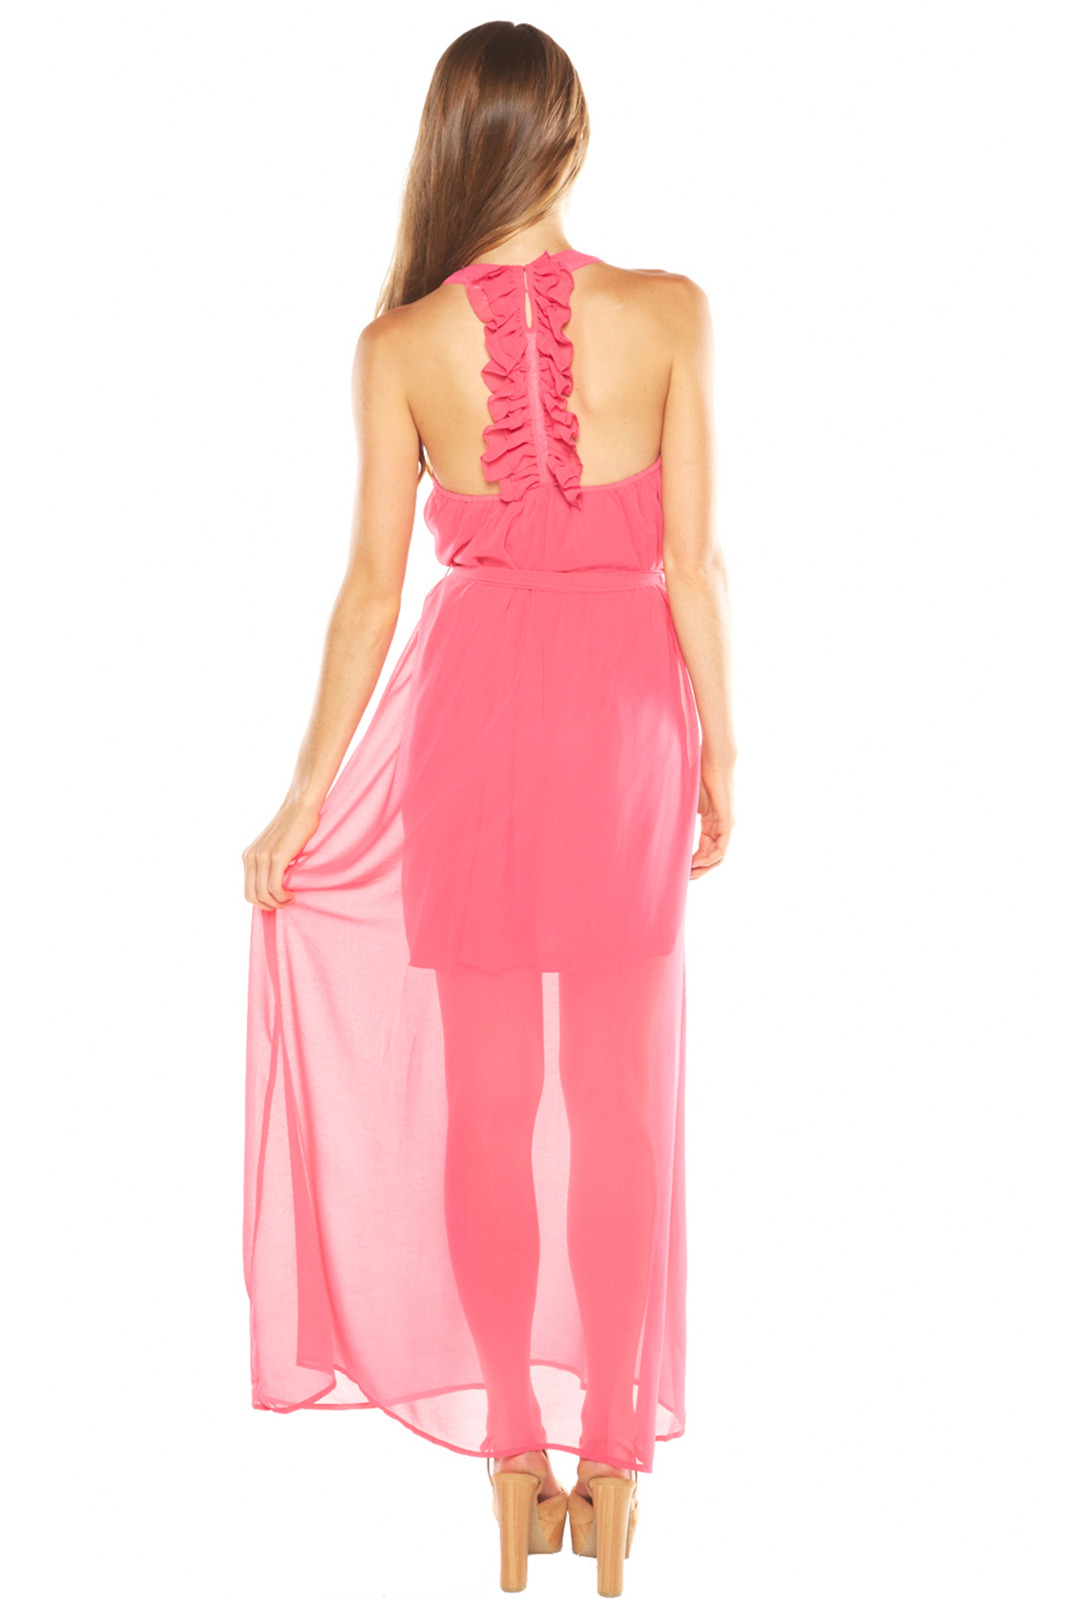 Ya Los Angeles Pink Maxi Dress - Side Cropped Image